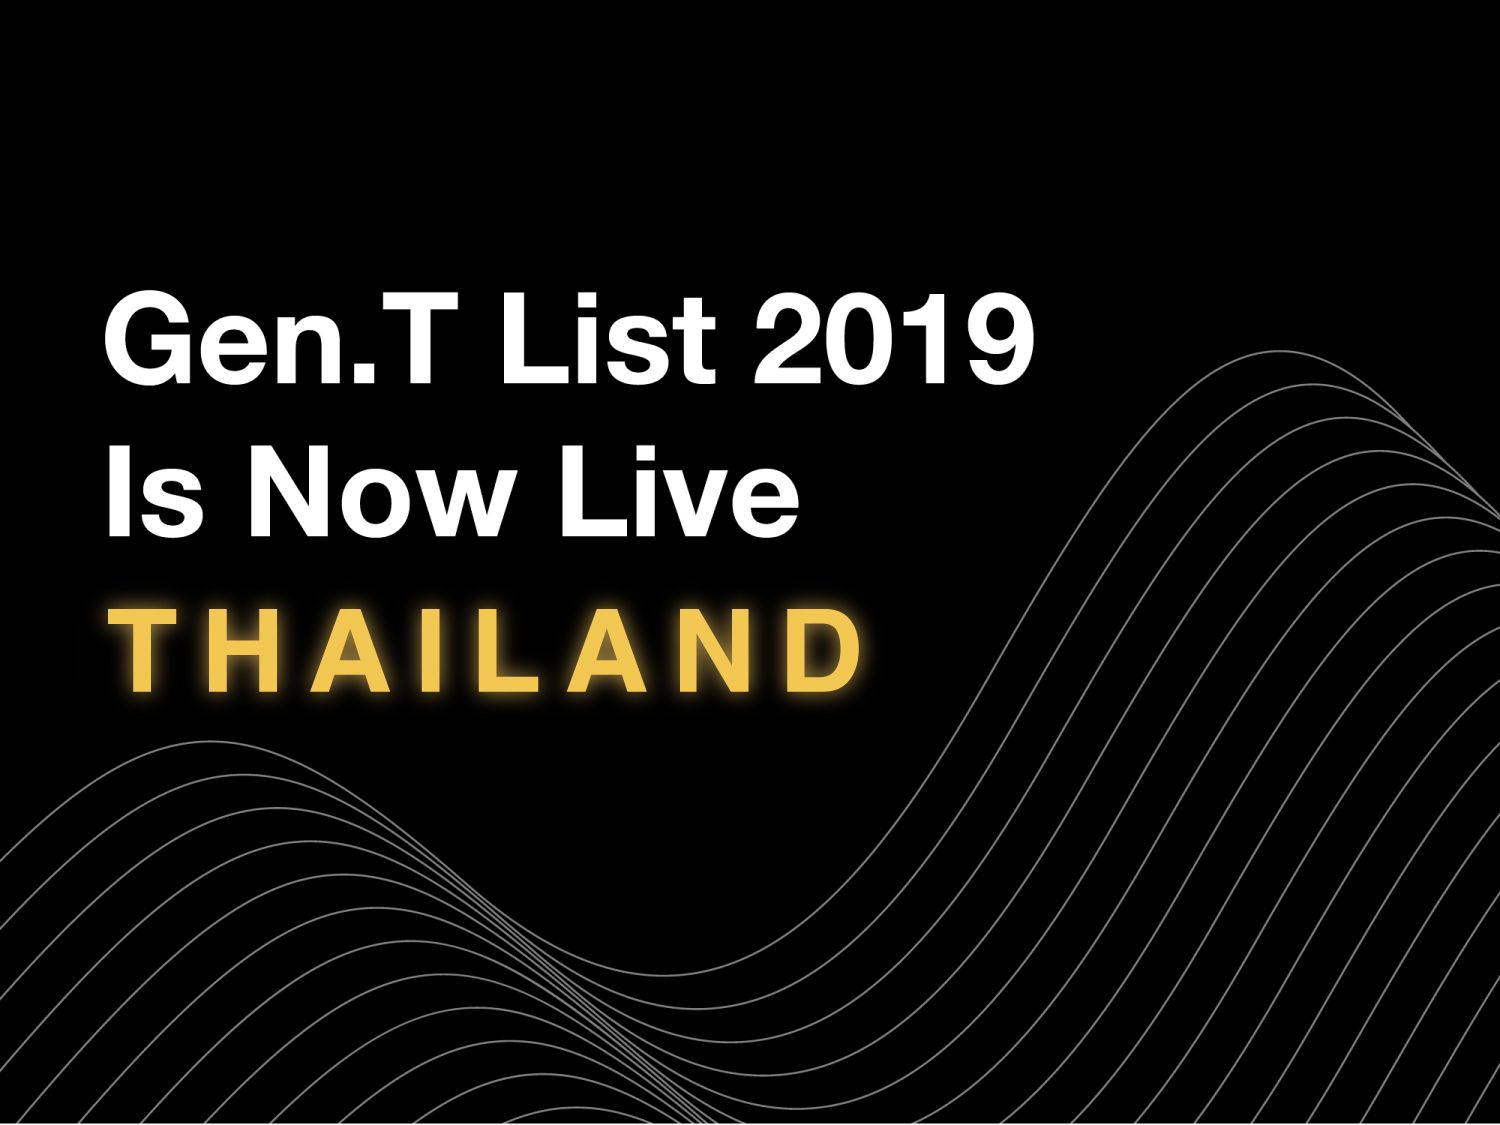 The Gen.T List 2019 Is Live: Meet This Year's 50 Thai Honourees